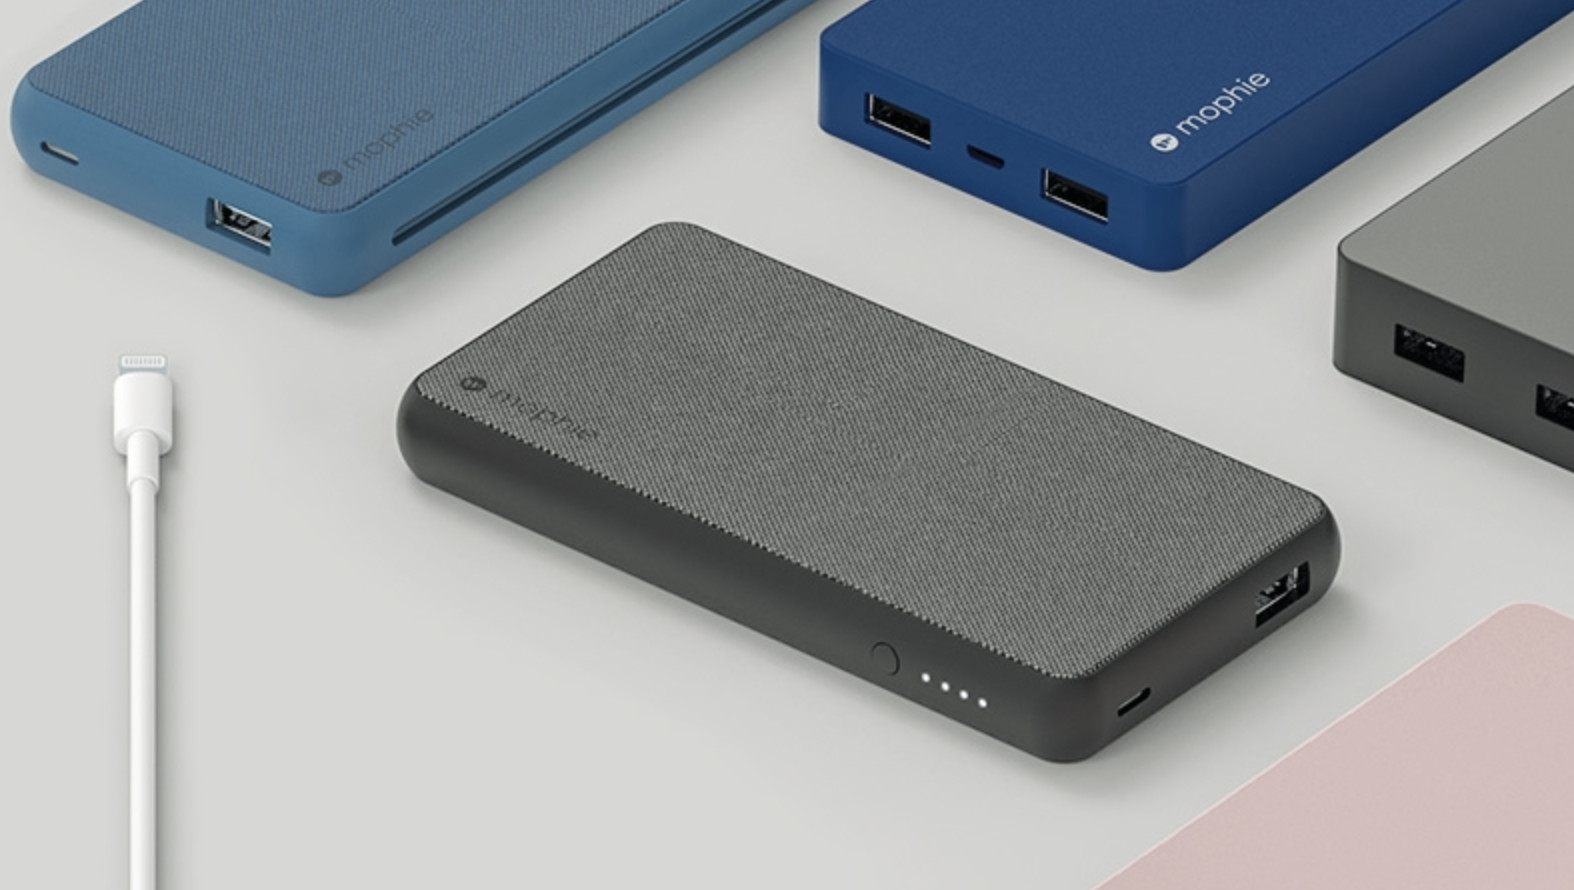 Mophie's new Apple-exclusive Powerstation portable chargers recharge via Lightning